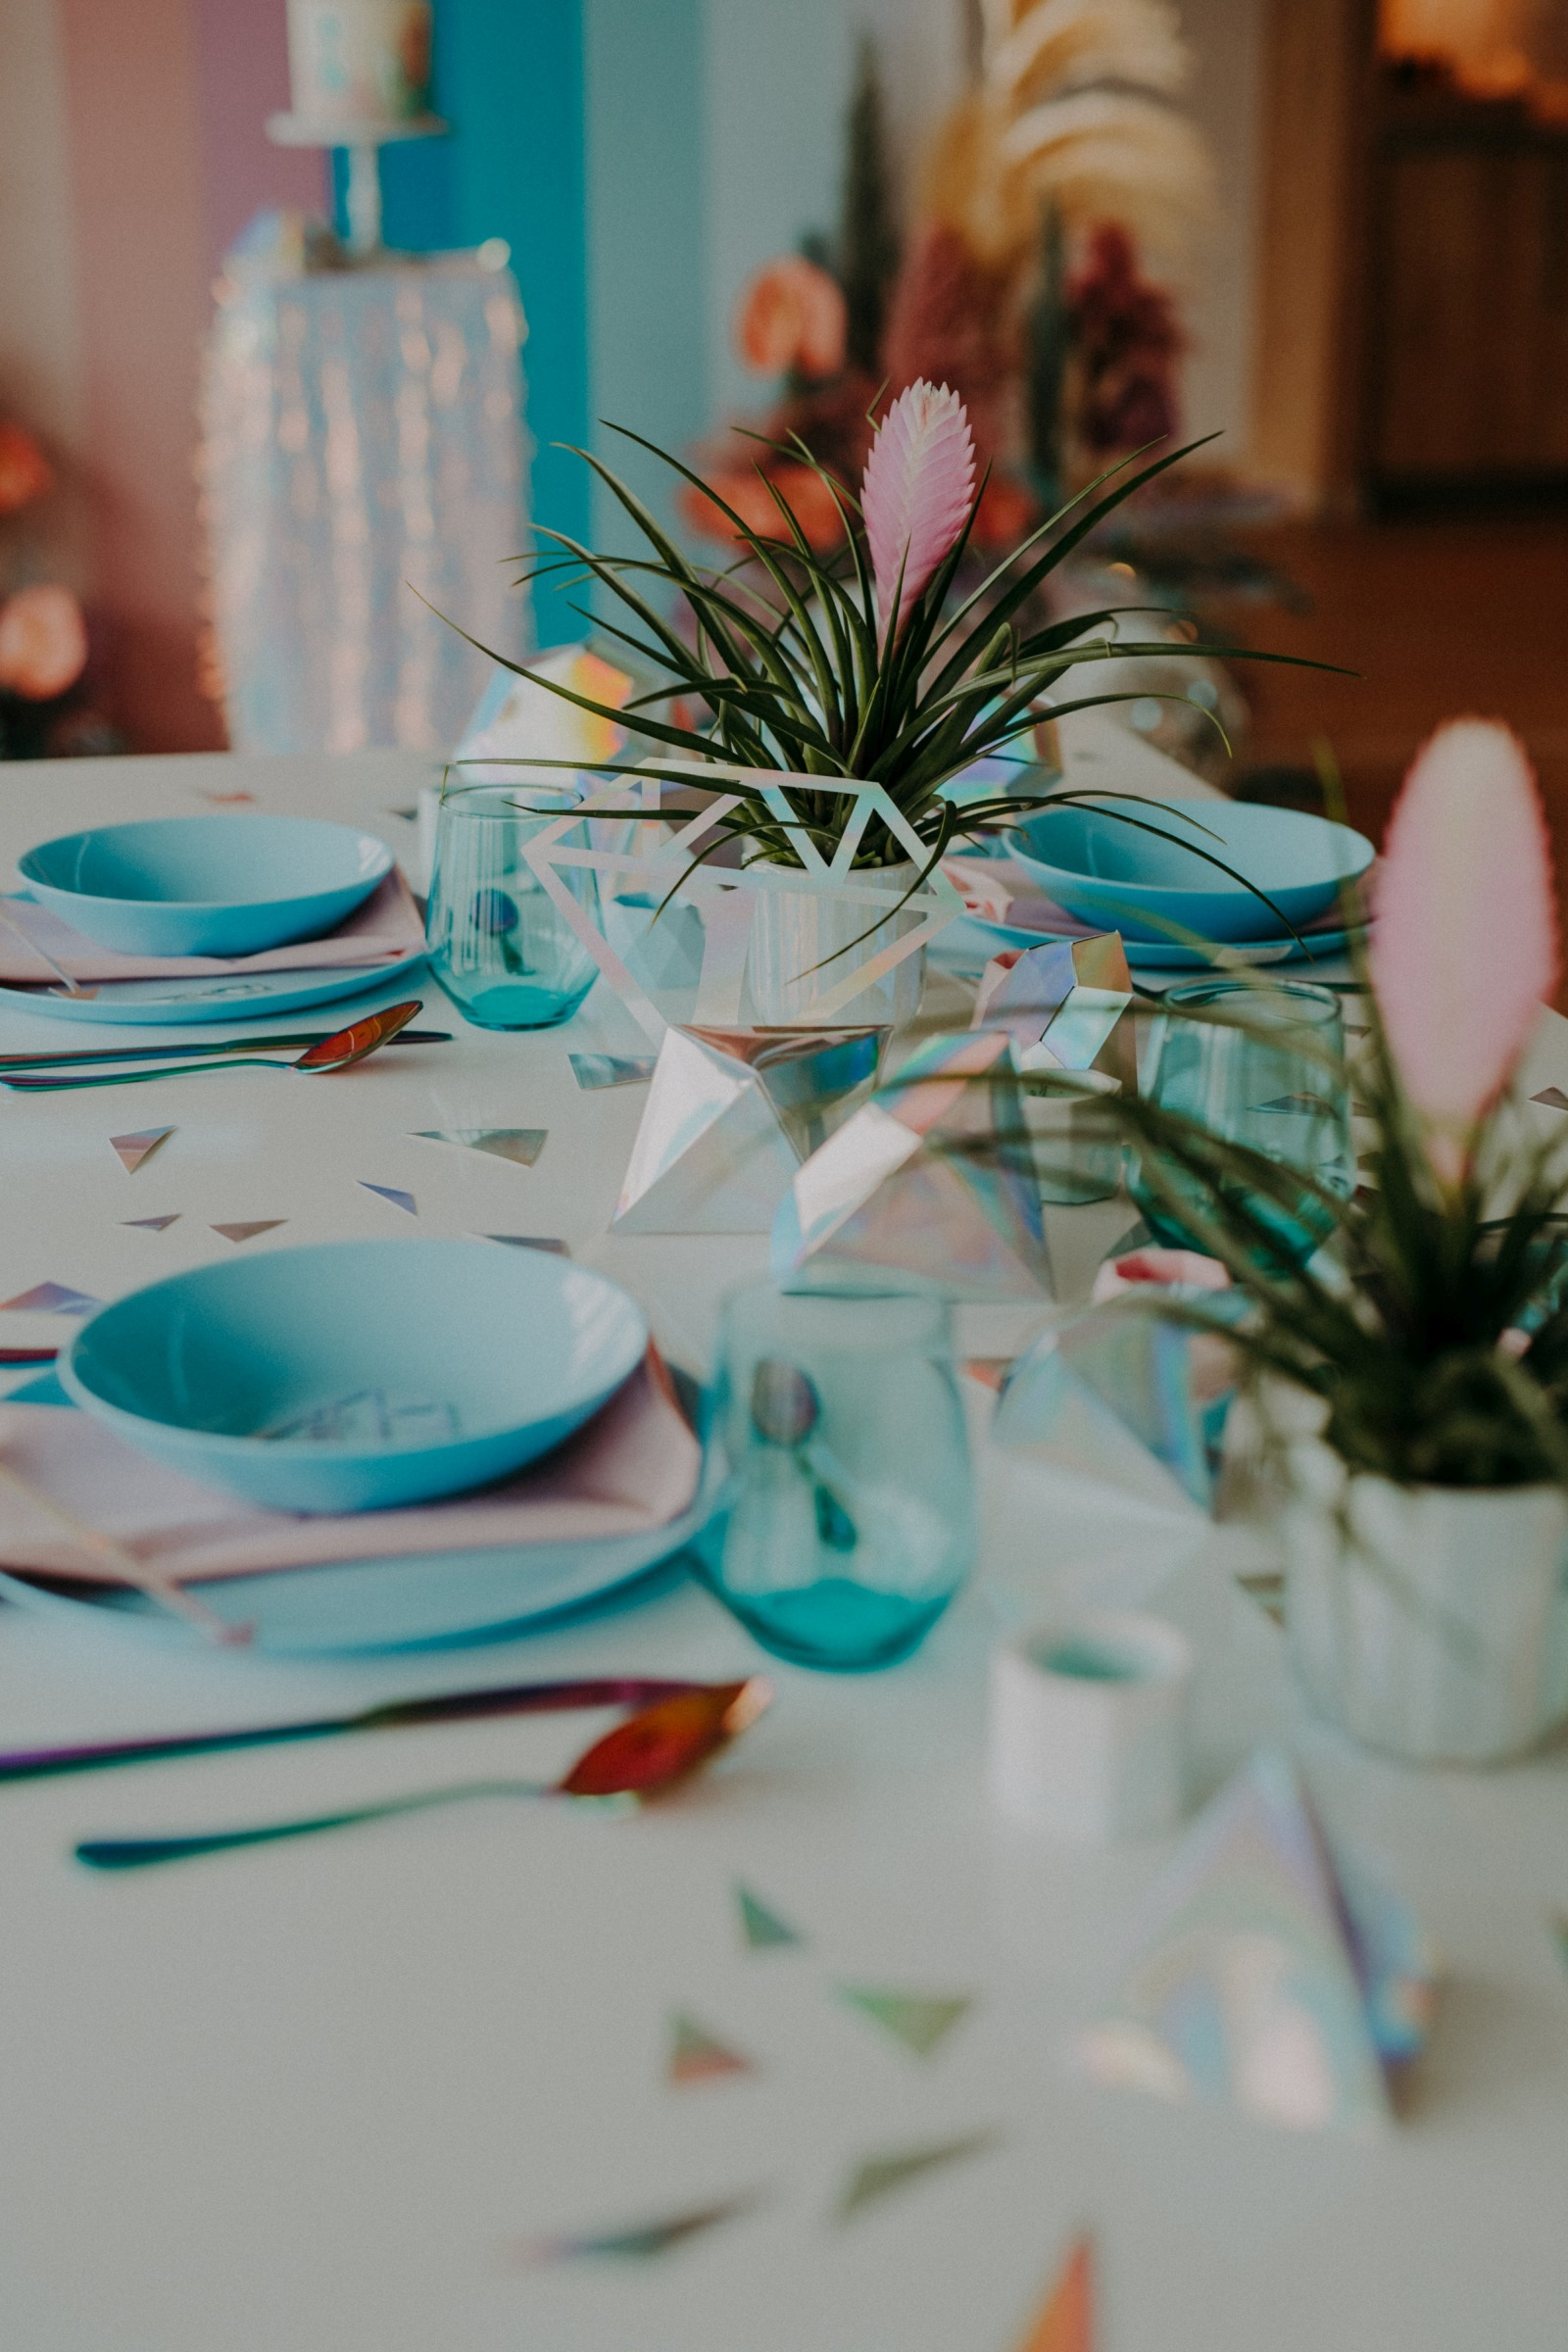 colourful pastel wedding - unconventional wedding - alternative wedding - unique wedding table - pastel wedding table decor - unique wedding styling